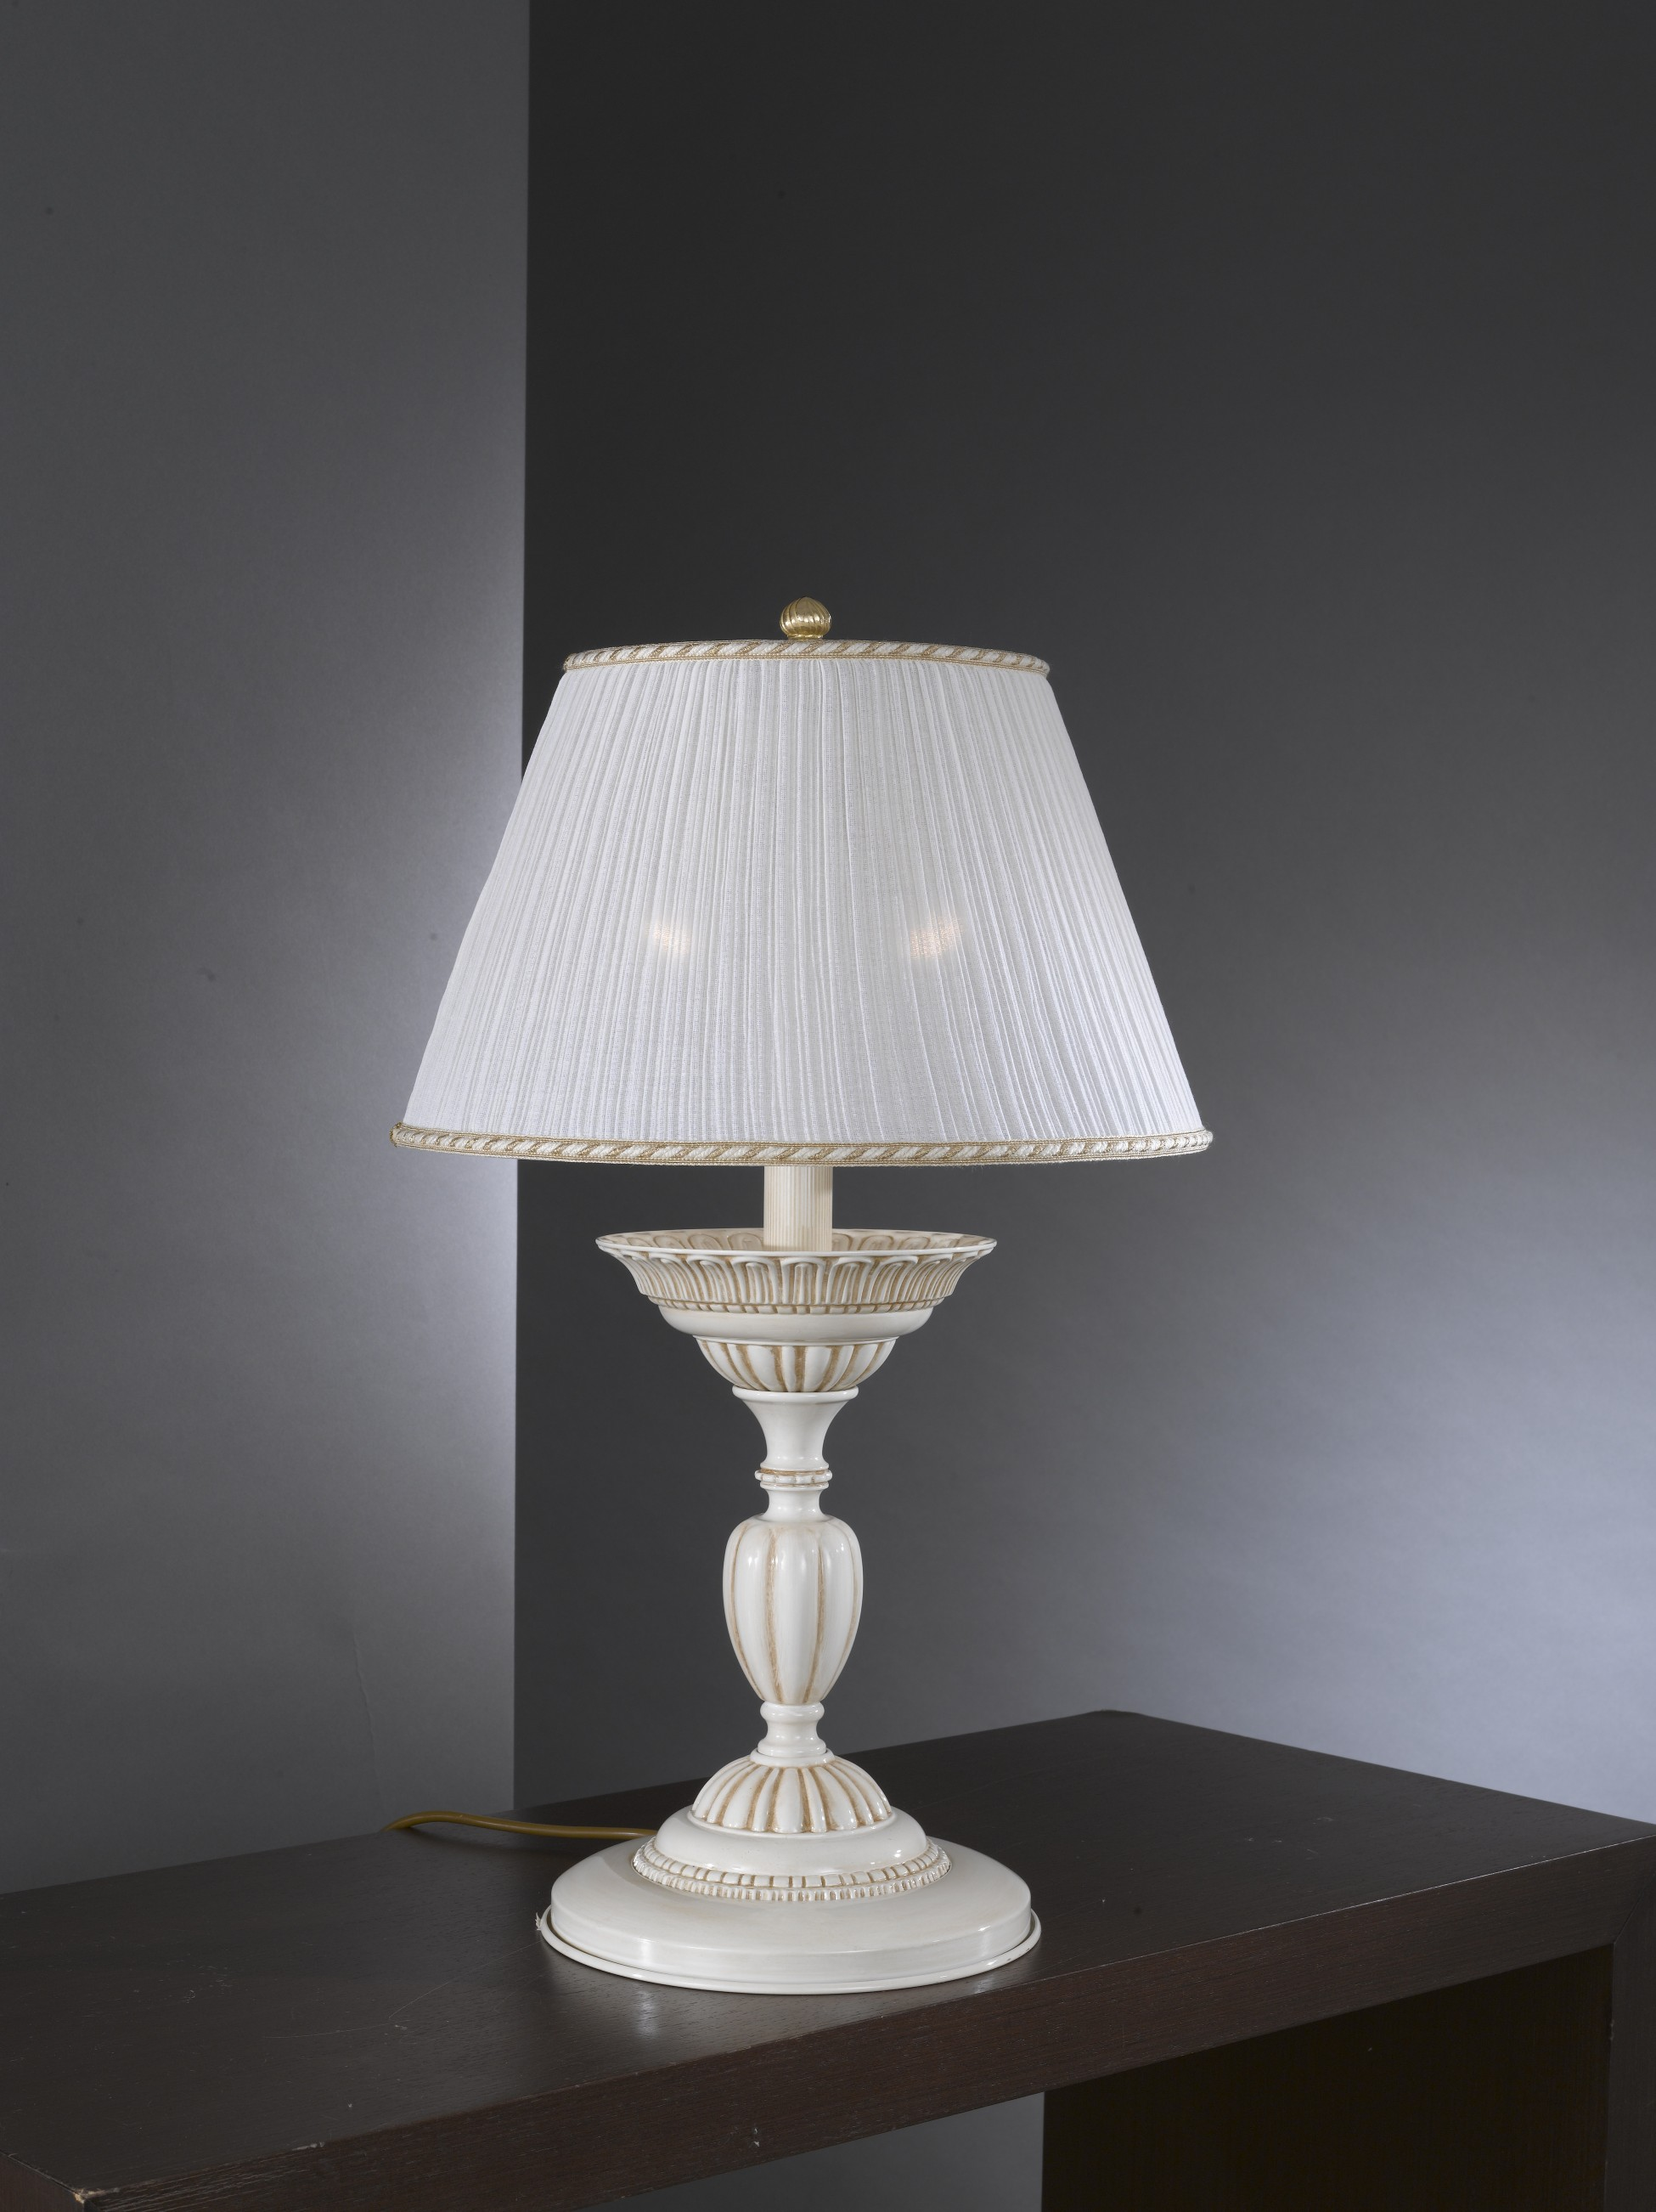 Brass Table Lamp With Lamp Shade Reccagni Store